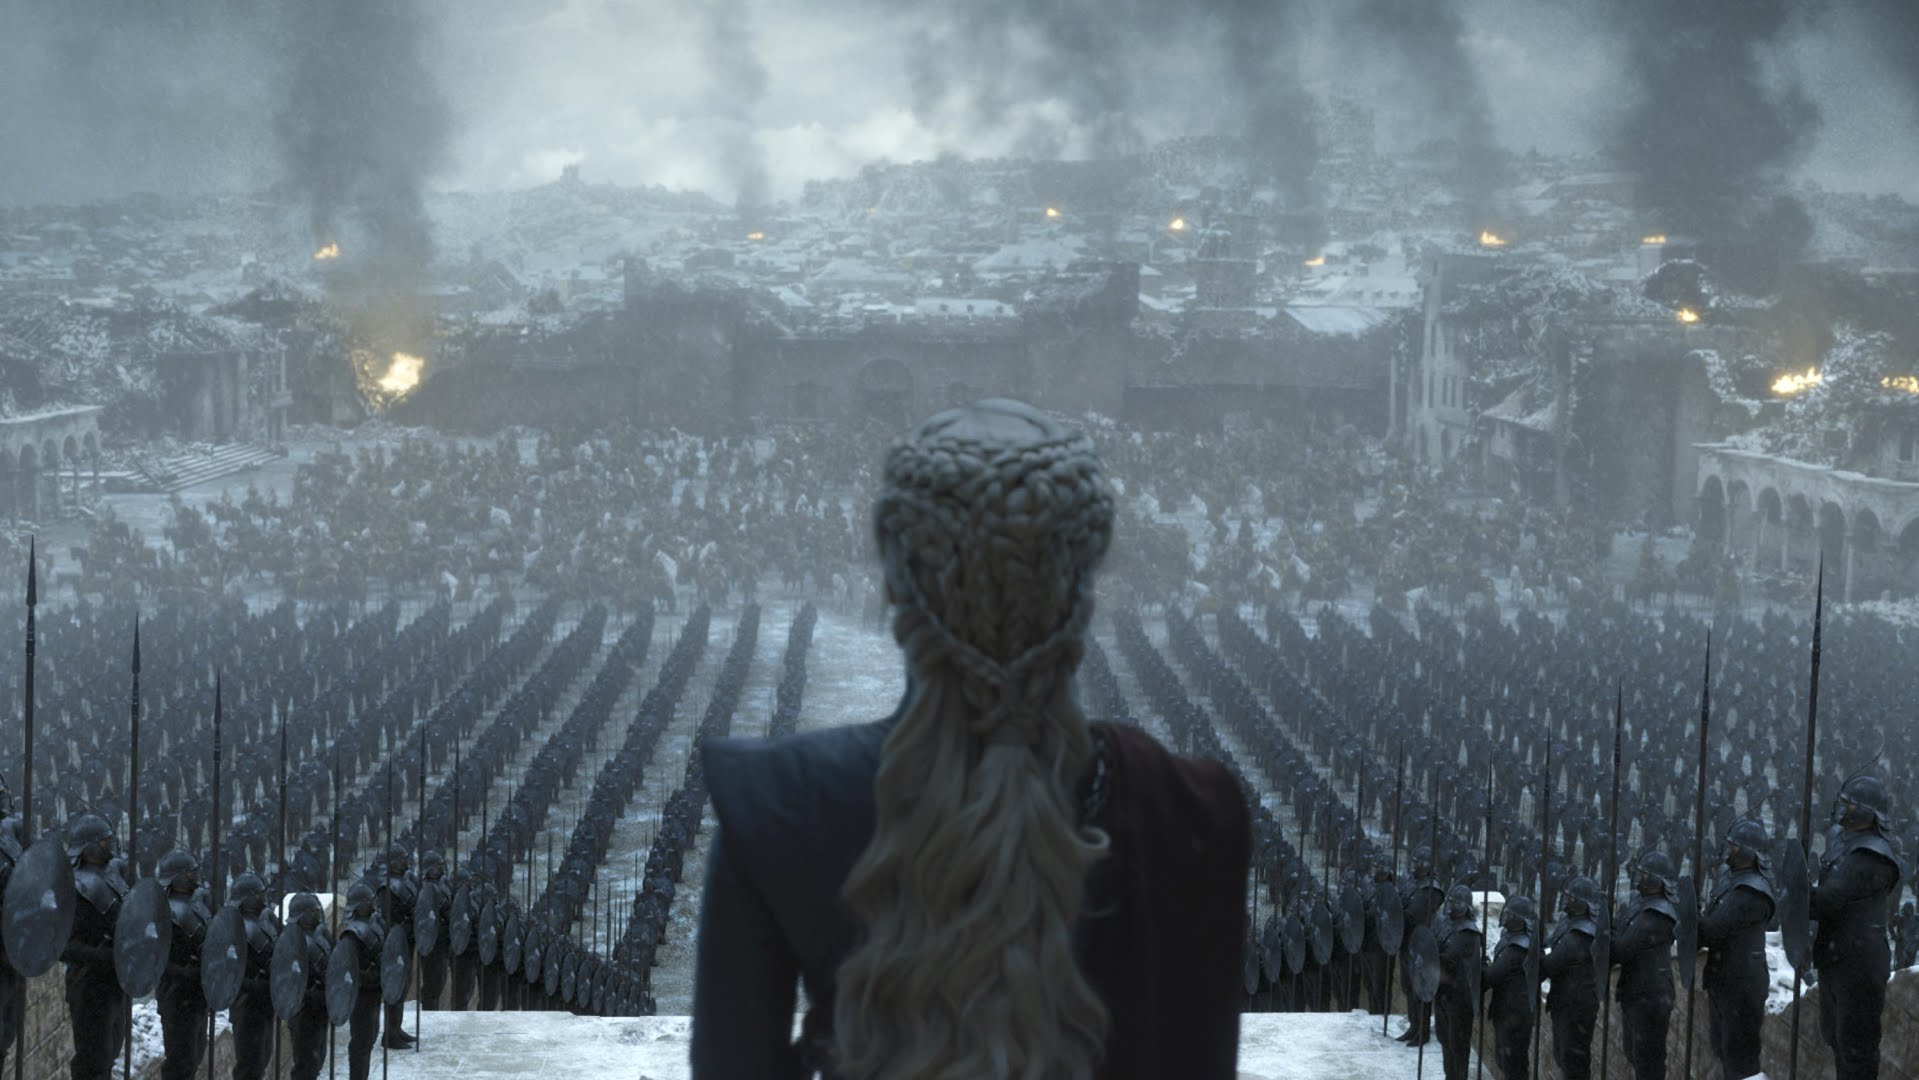 HBO just released glimpses of finale episode of Game of Thrones series.